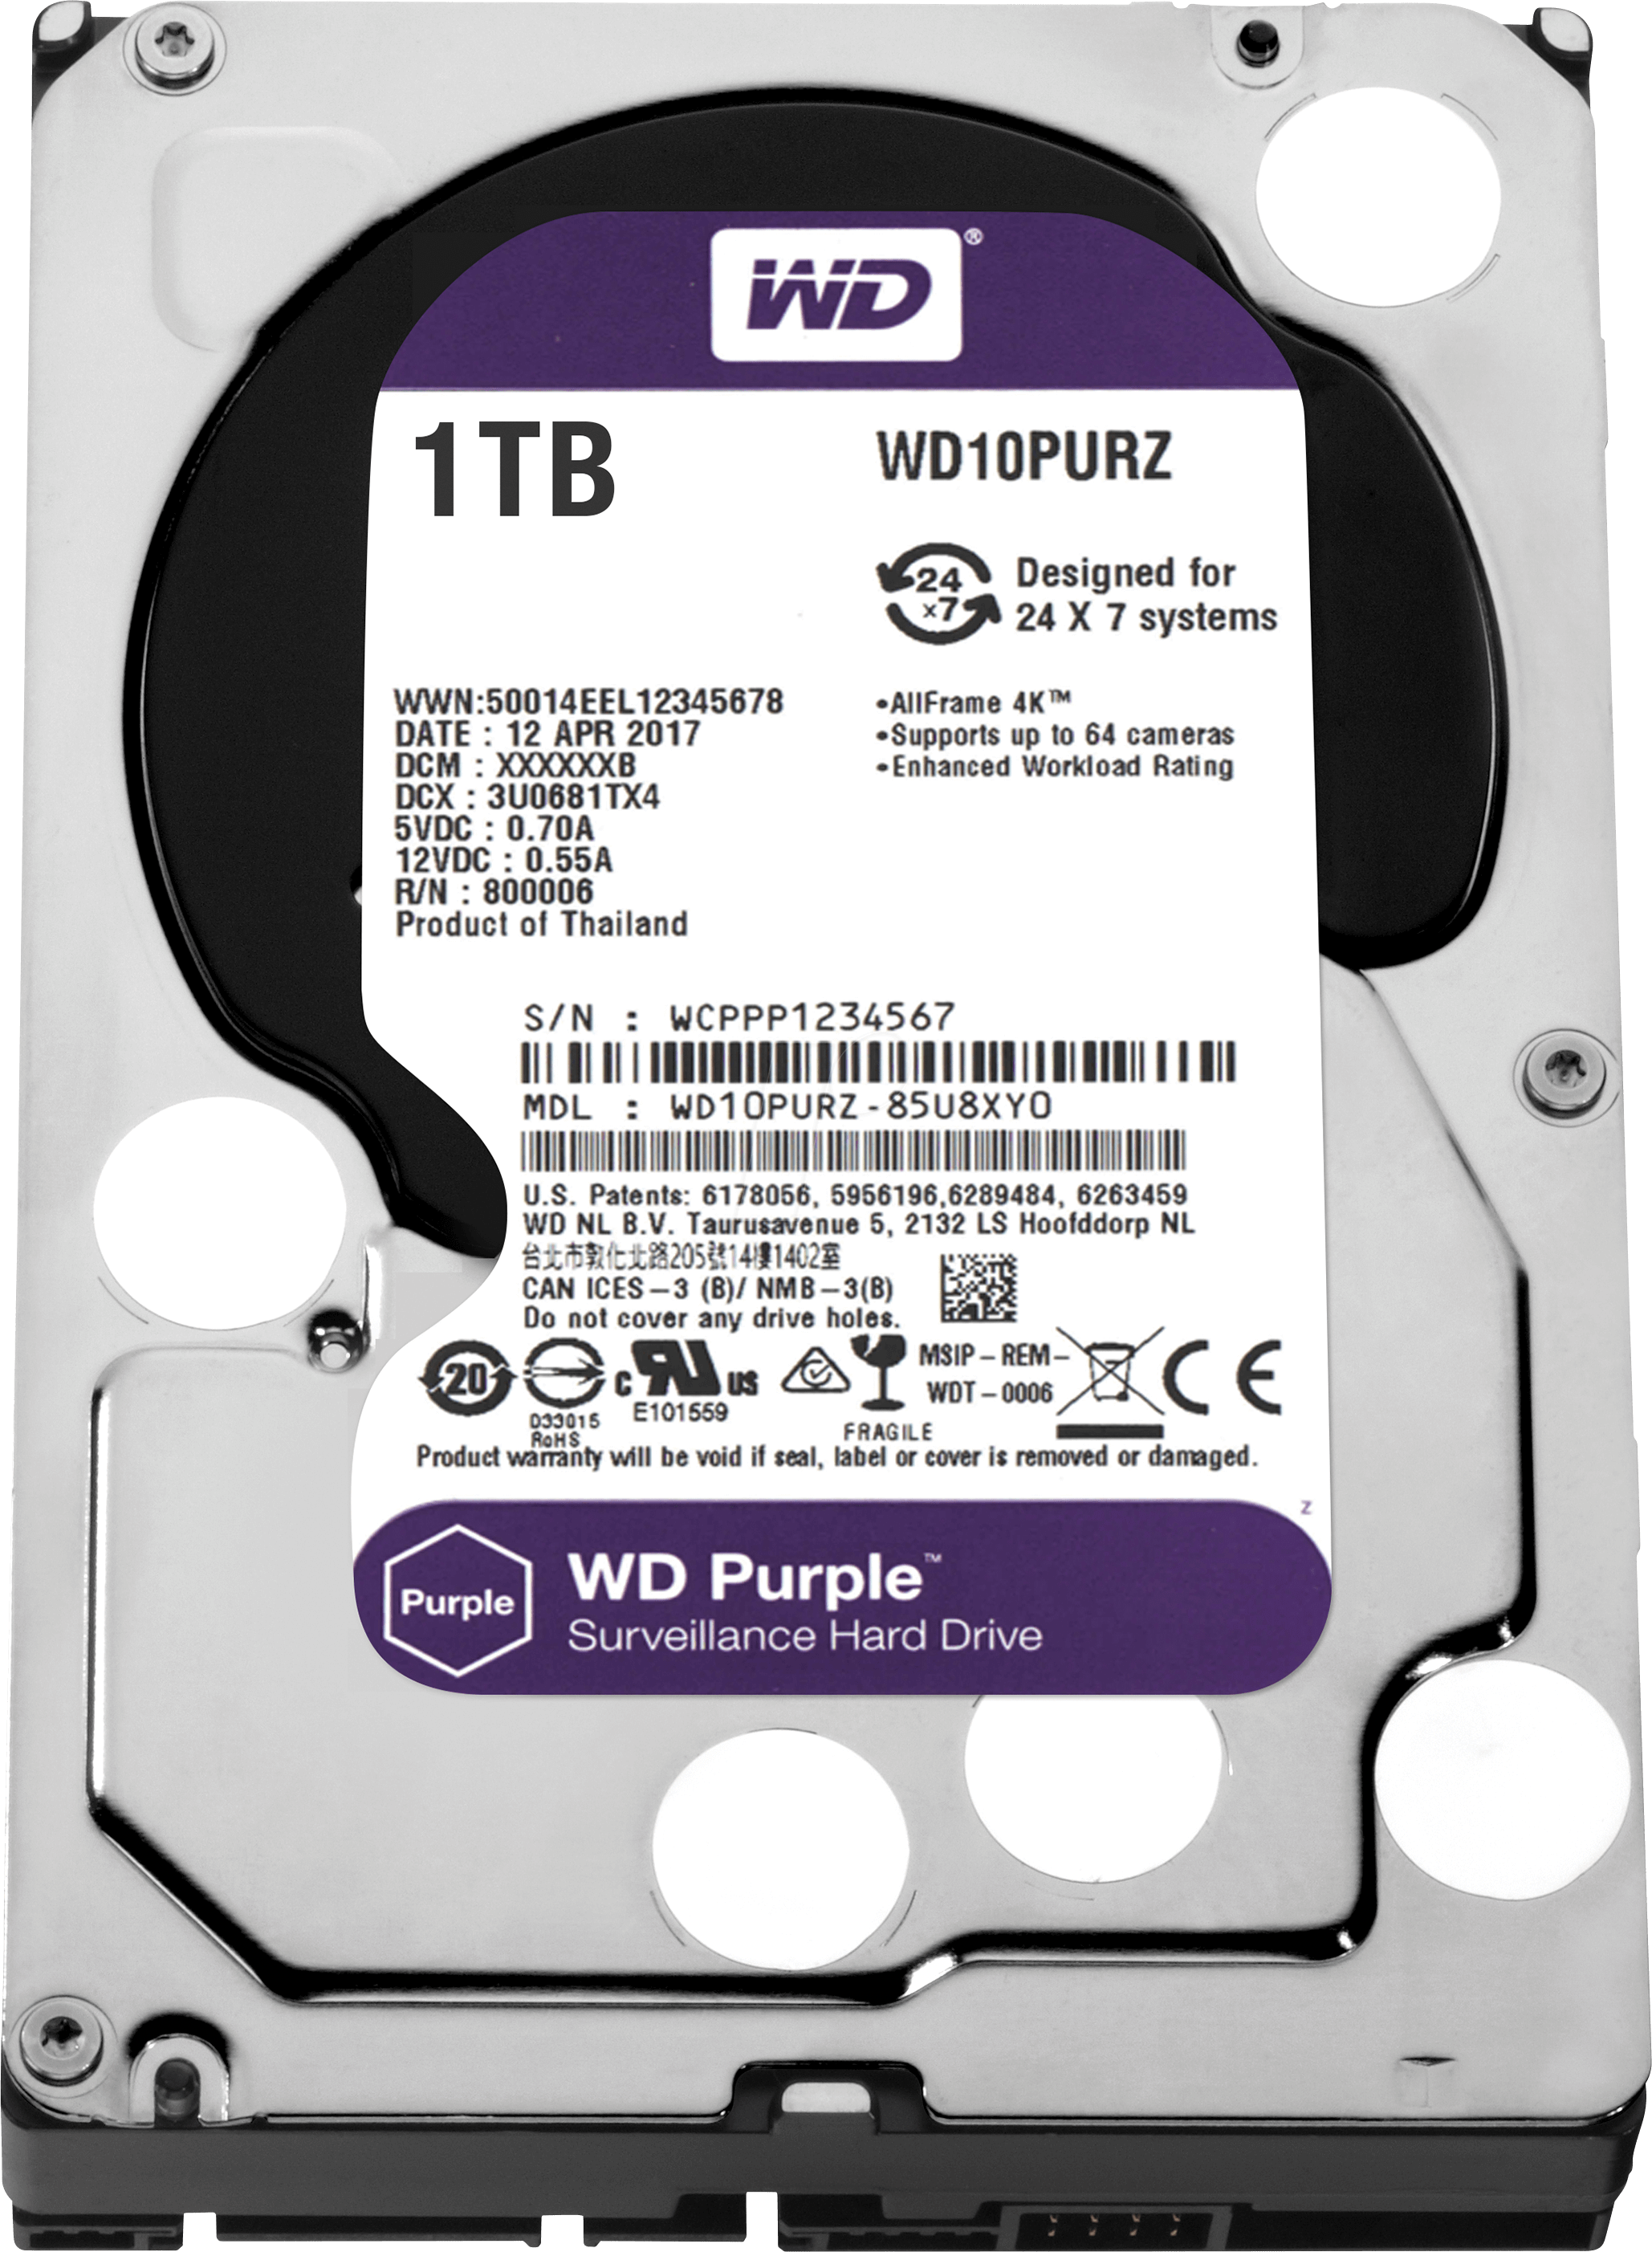 WD WESTERN DIGITAL WD10PURZ Purple 1TB 64MB SATA3 6Gb/s HDD 7x24 Güvenlik Hard Disk